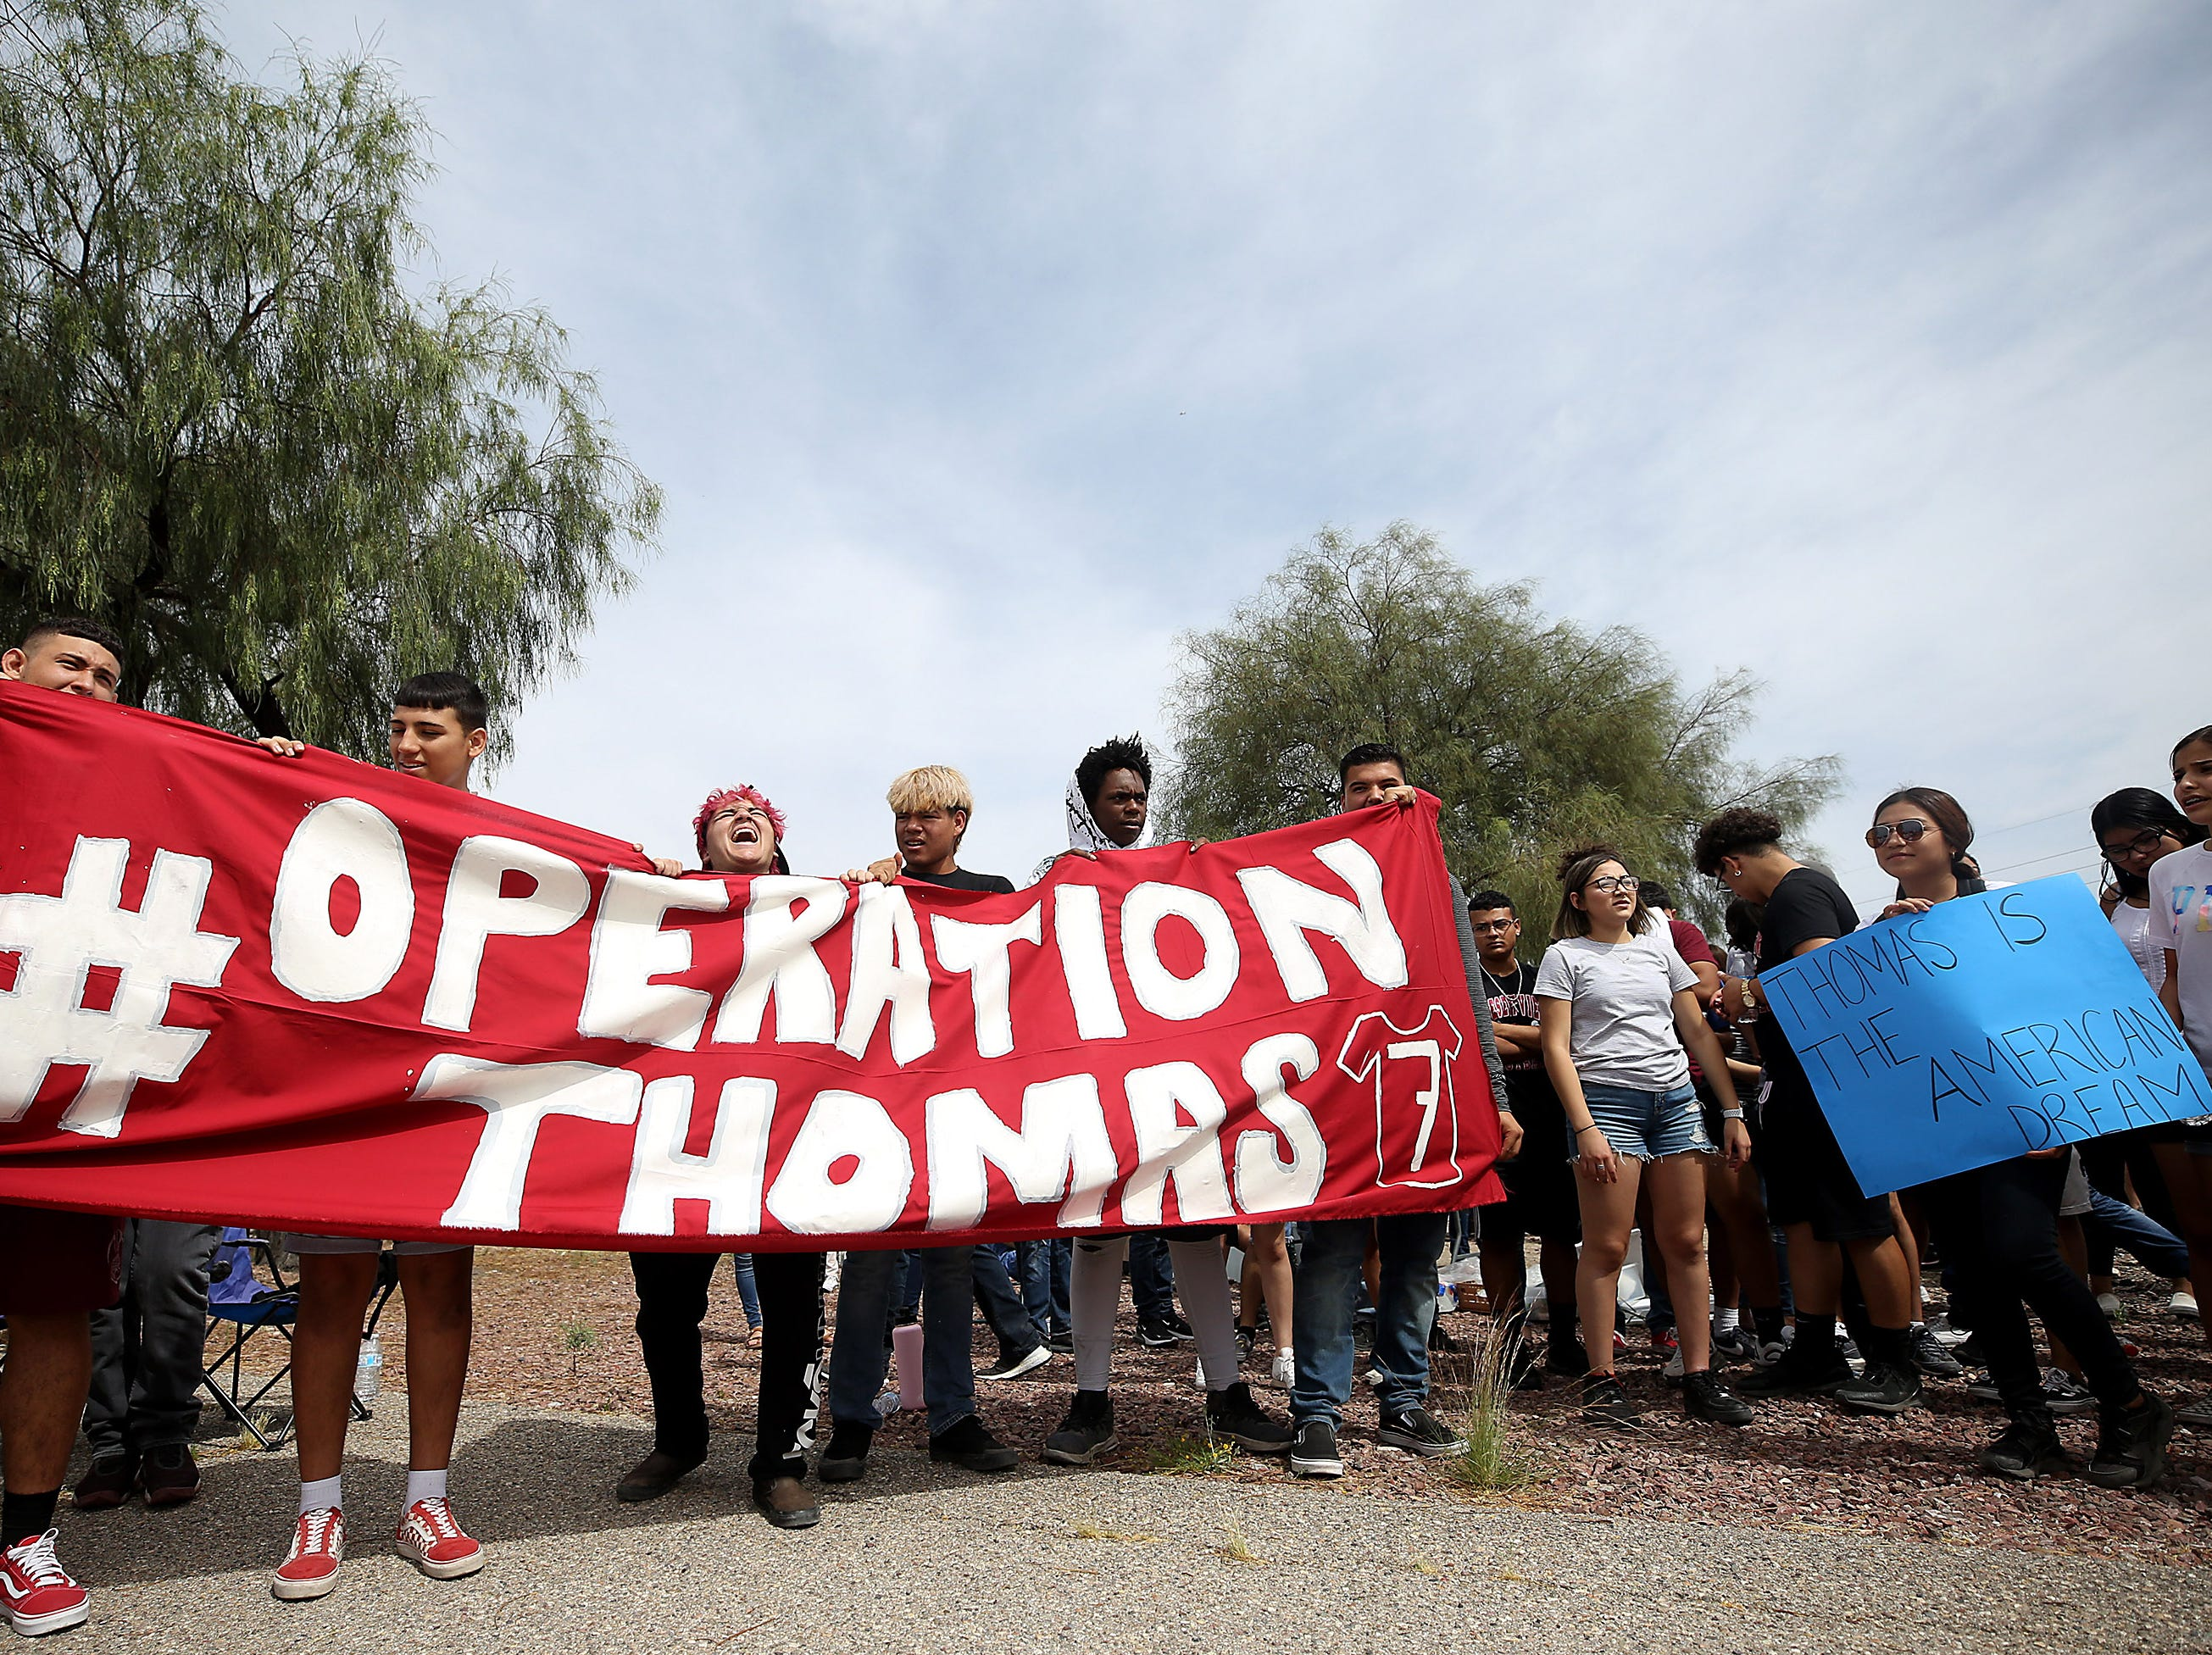 Approximately 200 students from Desert View High School marched to the Pima County Sheriff's Department May 6th, 2019 to protest the detention of their classmate, Thomas Torres, who was stopped by a sheriff's deputy on May 2 and was detained until Border Patrol arrived.